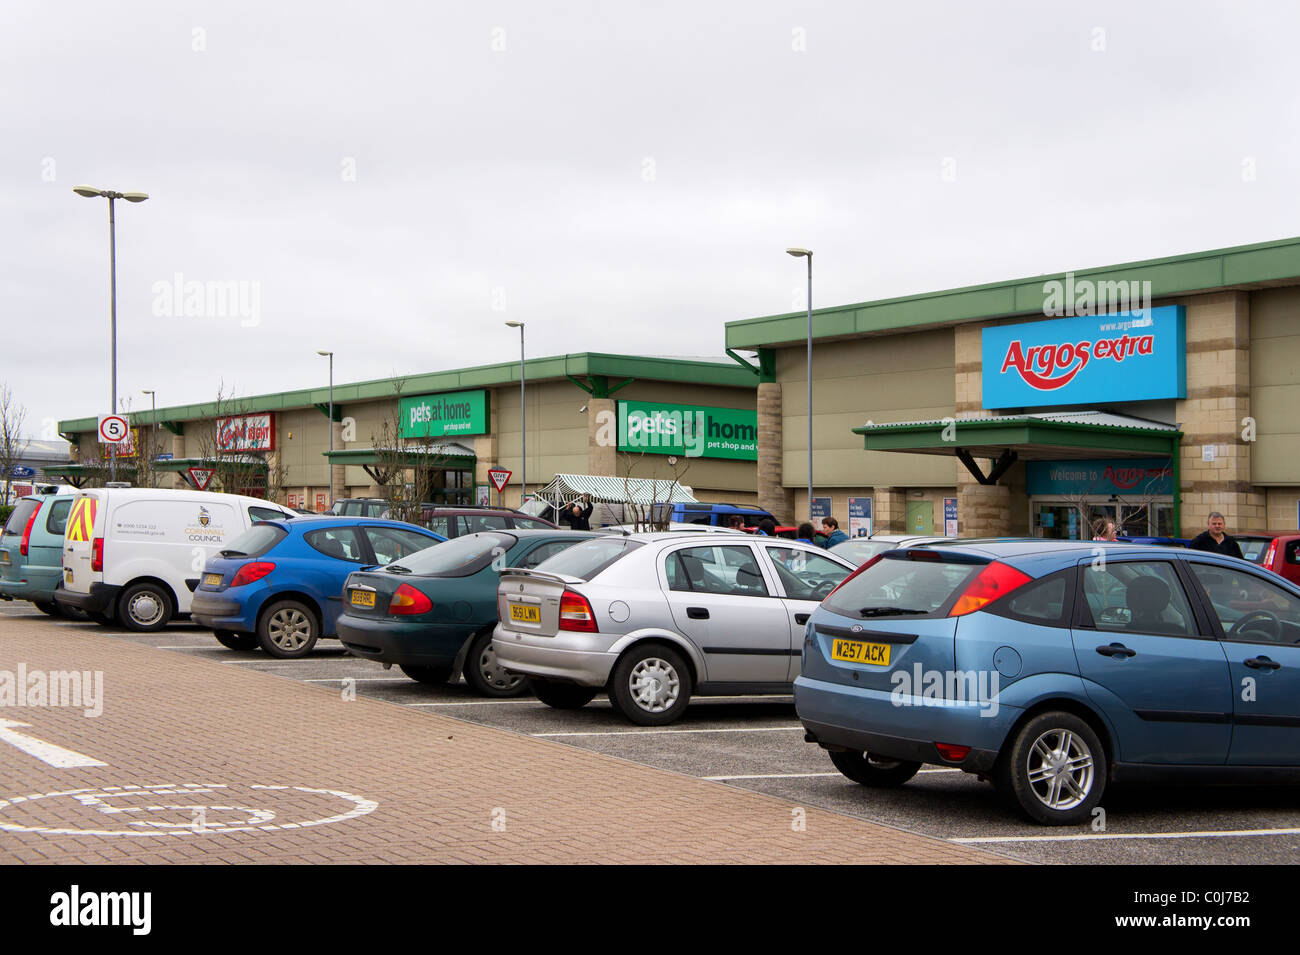 An out of town retail park at Truro in Cornwall, UK - Stock Image